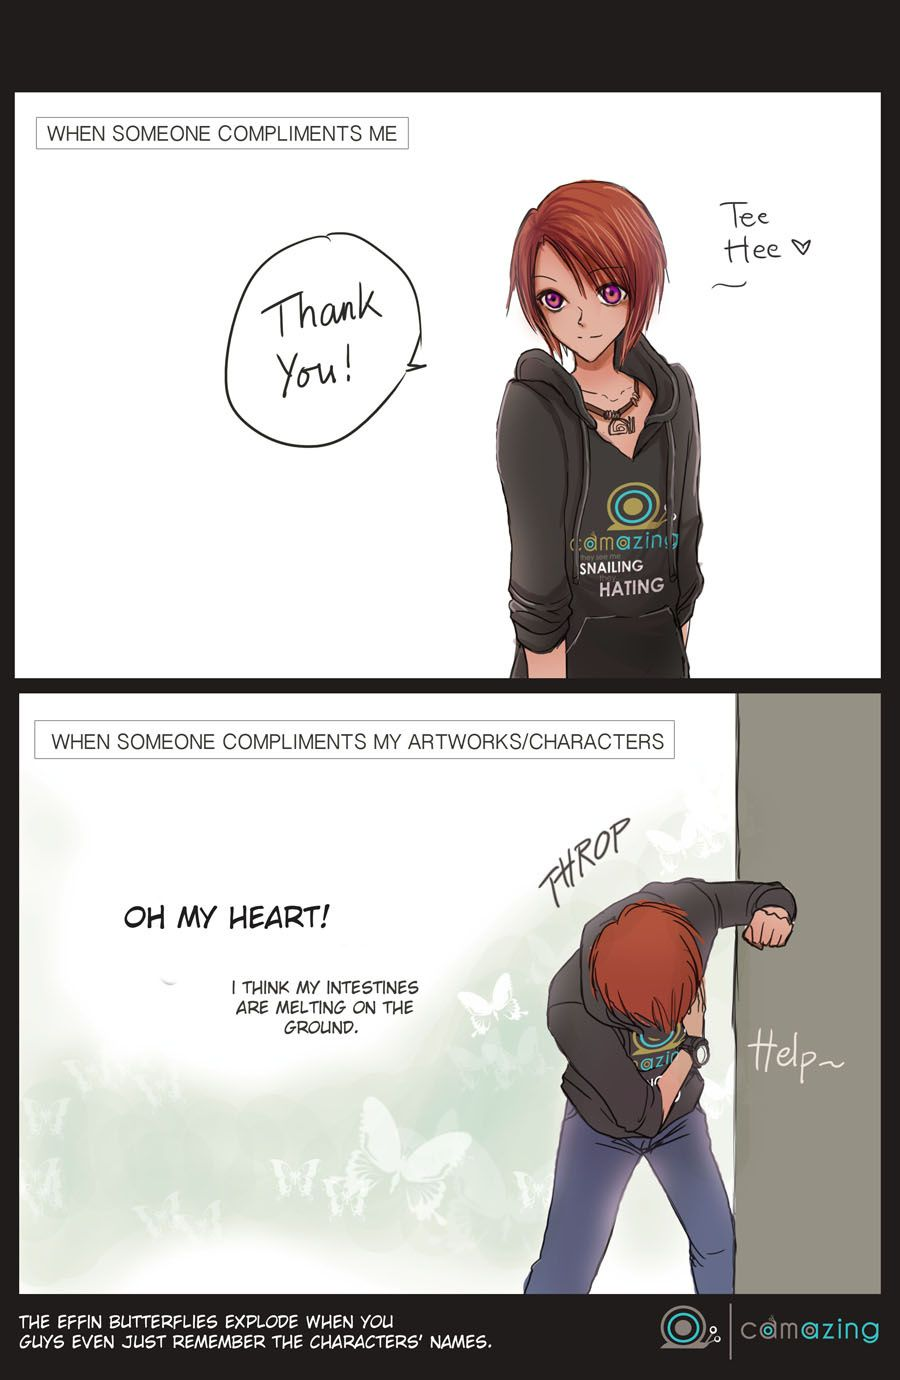 Compliments - Camazing (Want more like this? Check them out above! ^0^)